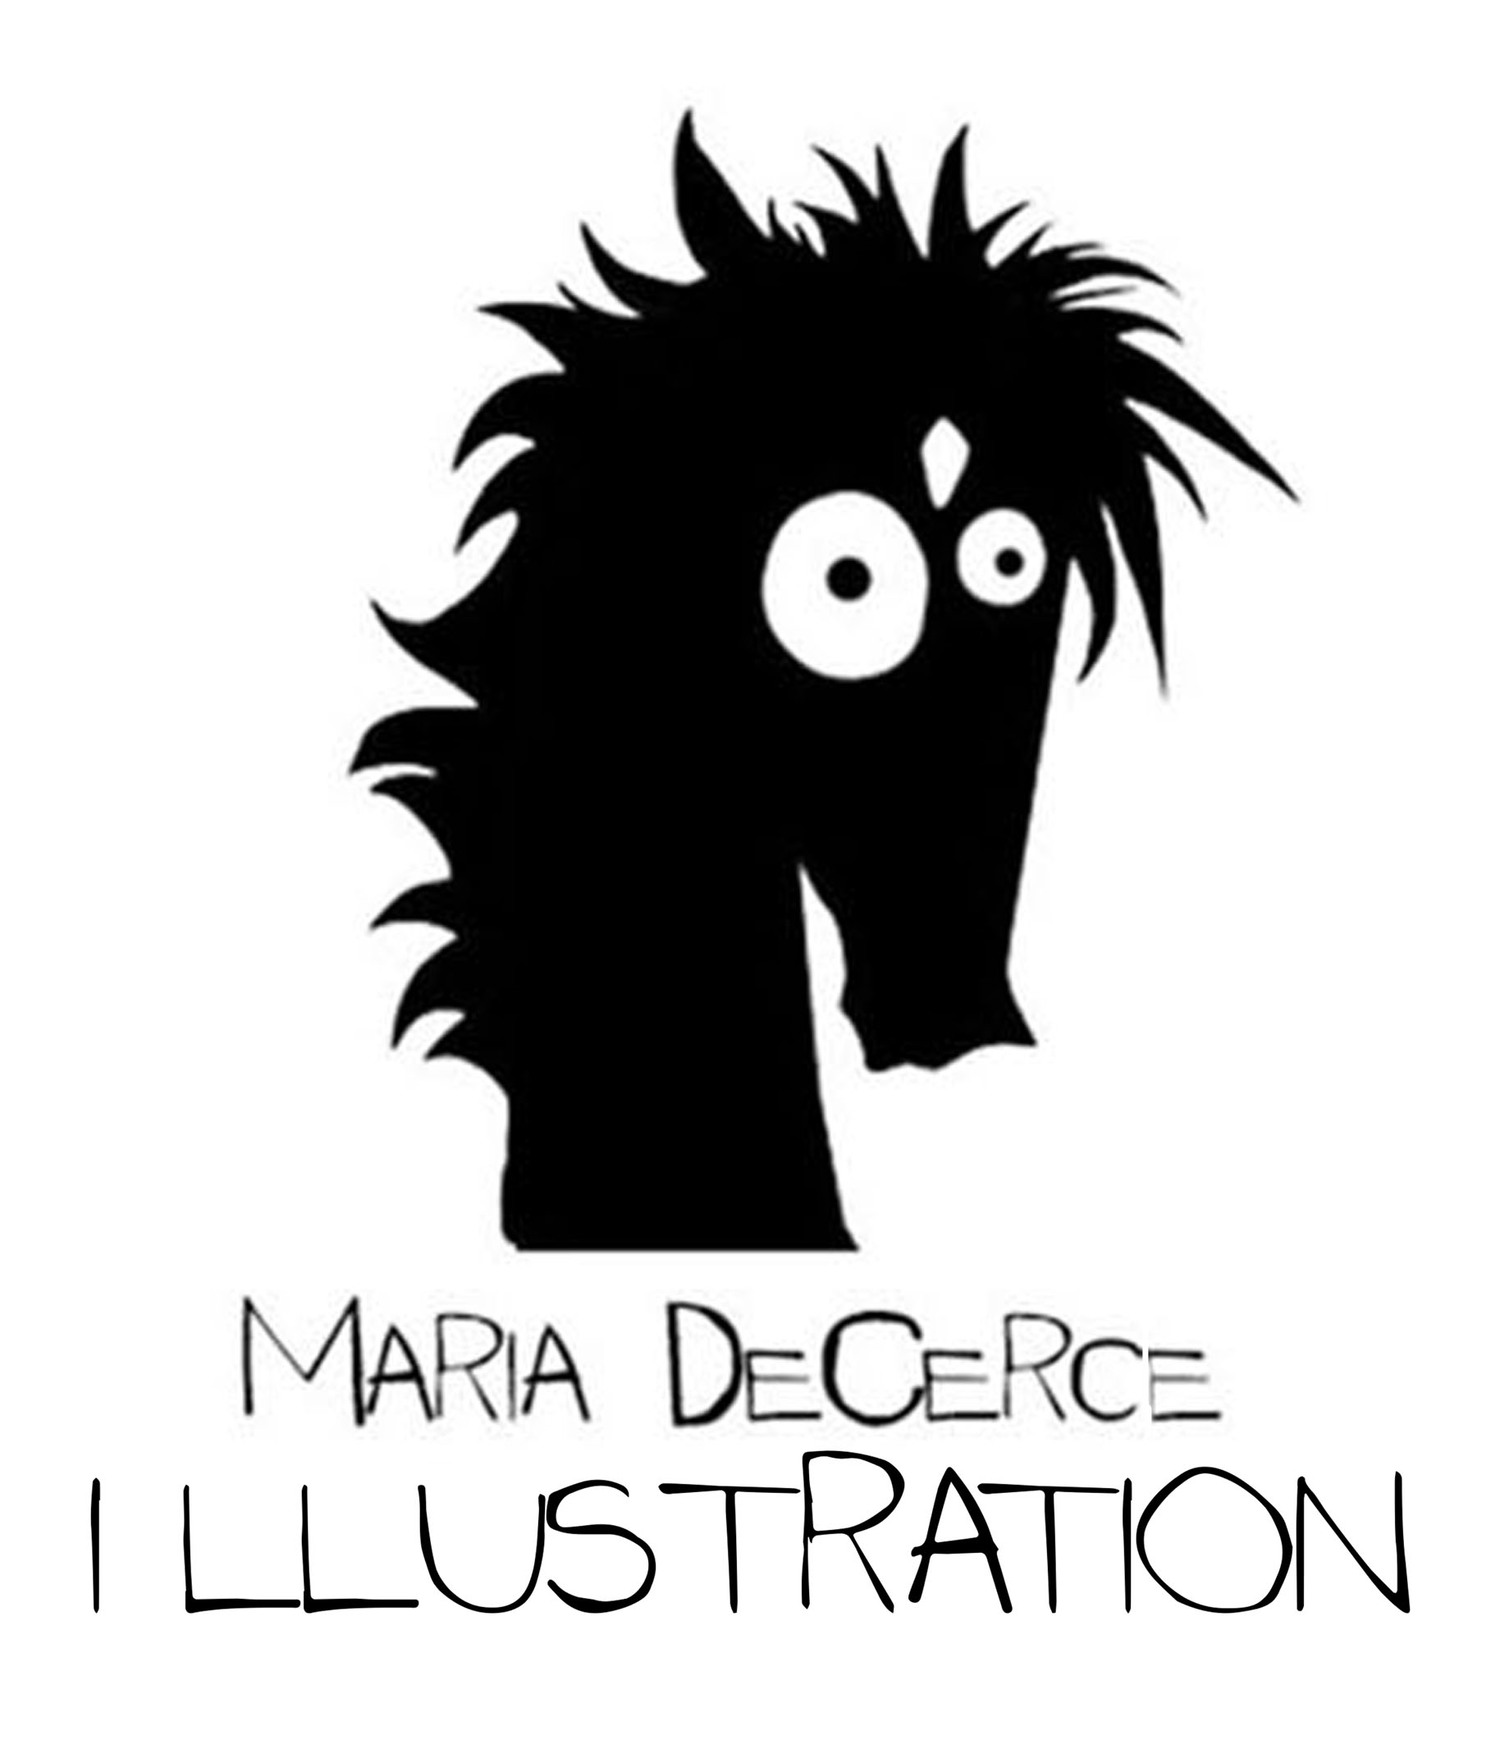 Maria DeCerce Illustration